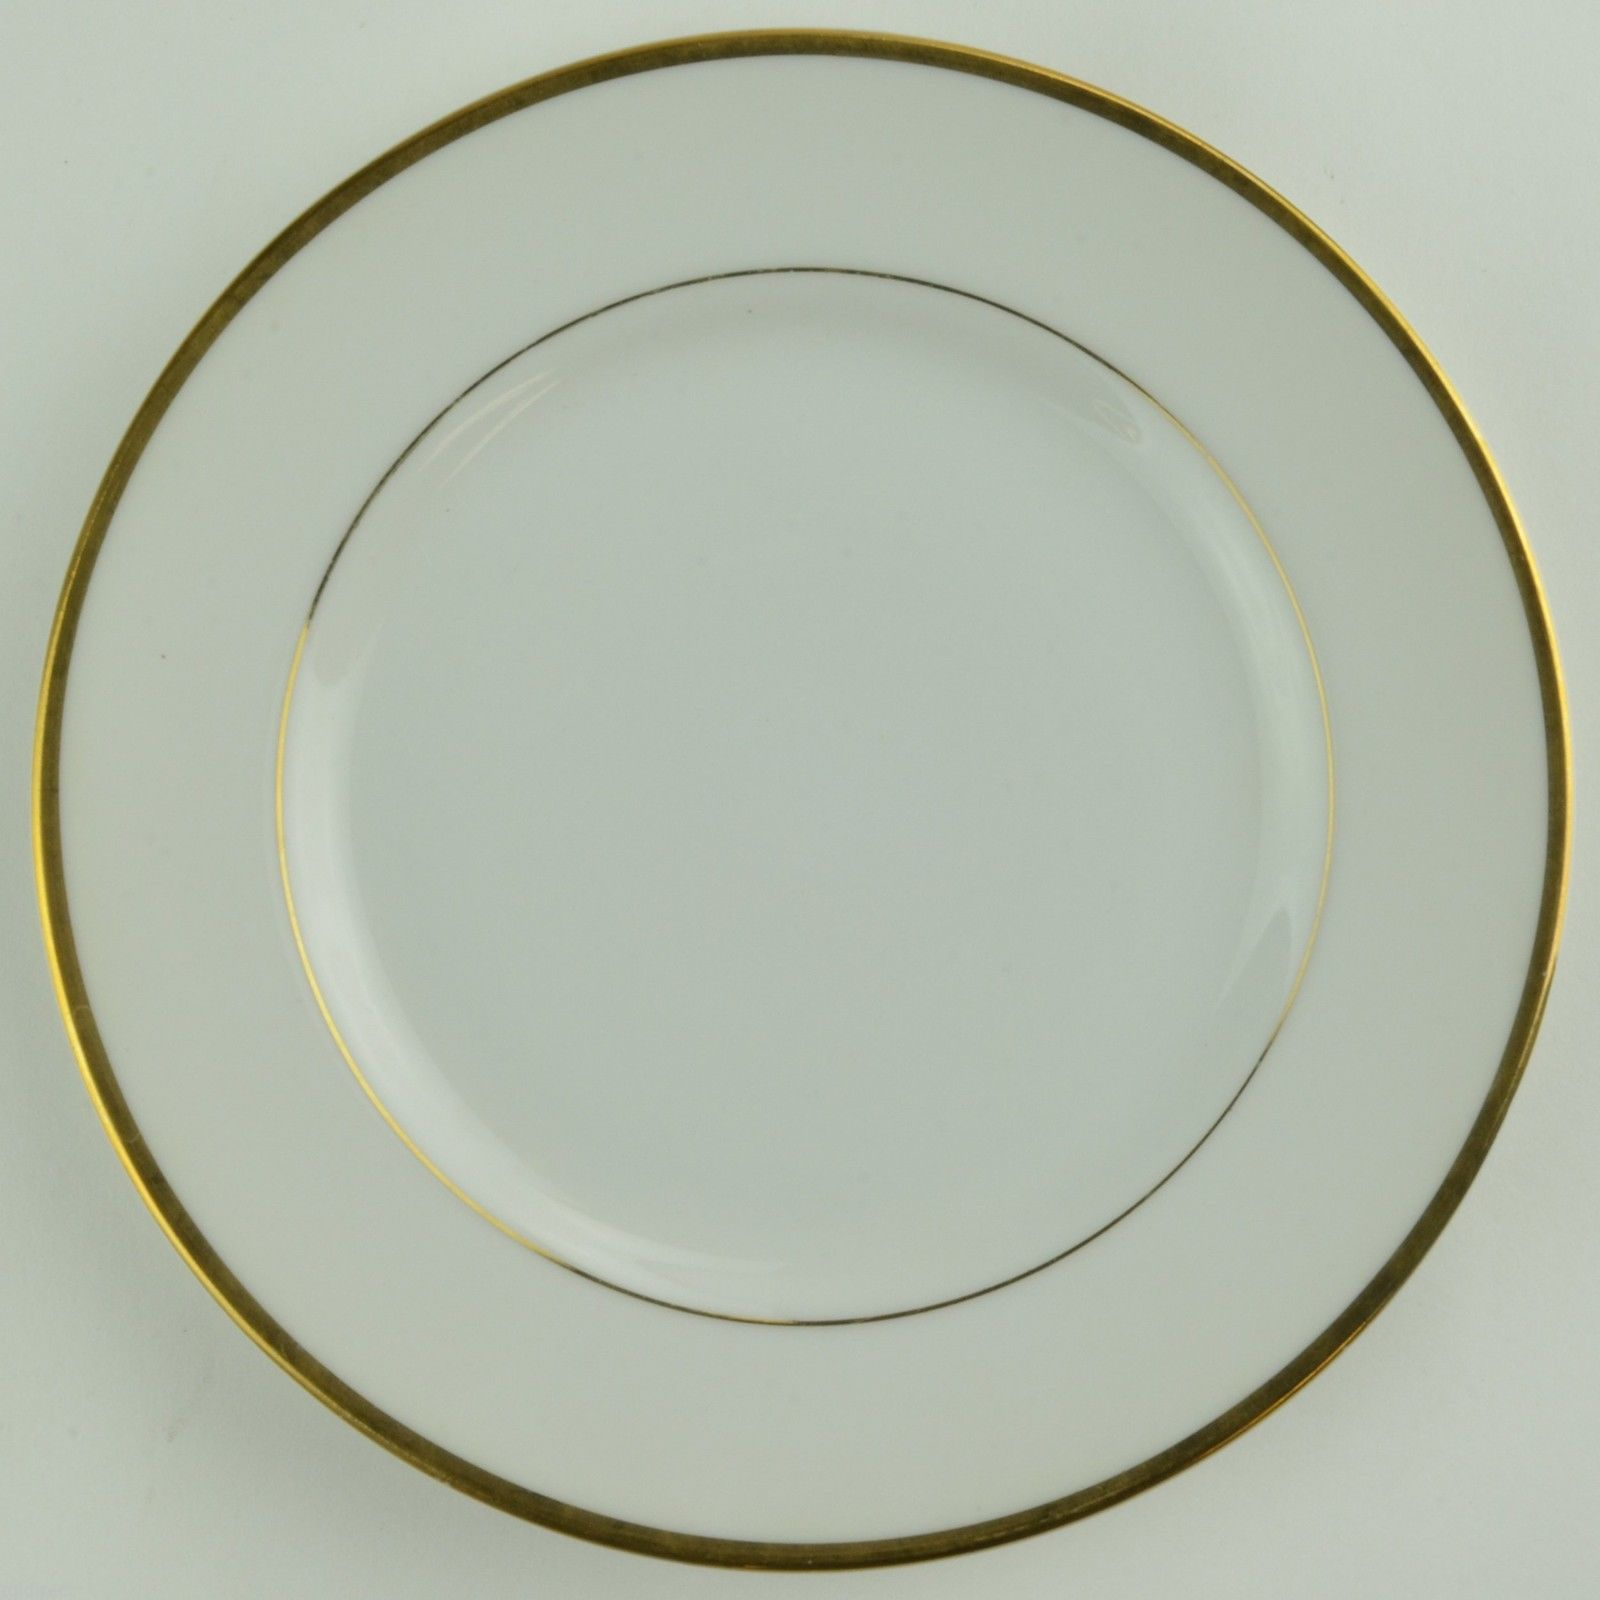 Fine China Of Japan Sonnet Bread Plate Gold Band Trim Tableware Dinnerware